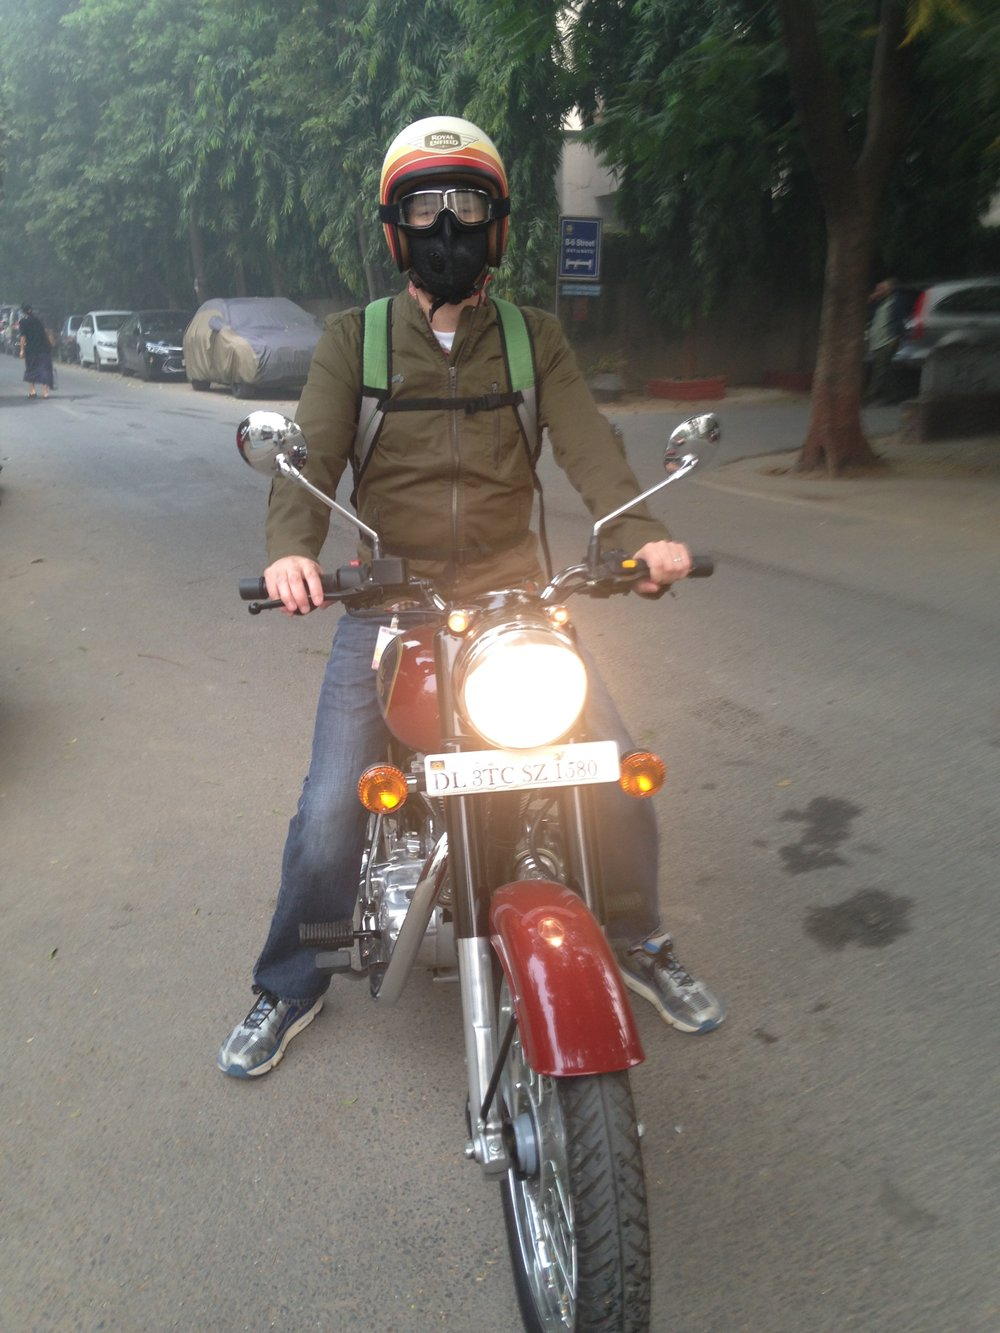 You take your car to work, I'll take my bike. (Delhi, India; Oct 2017)